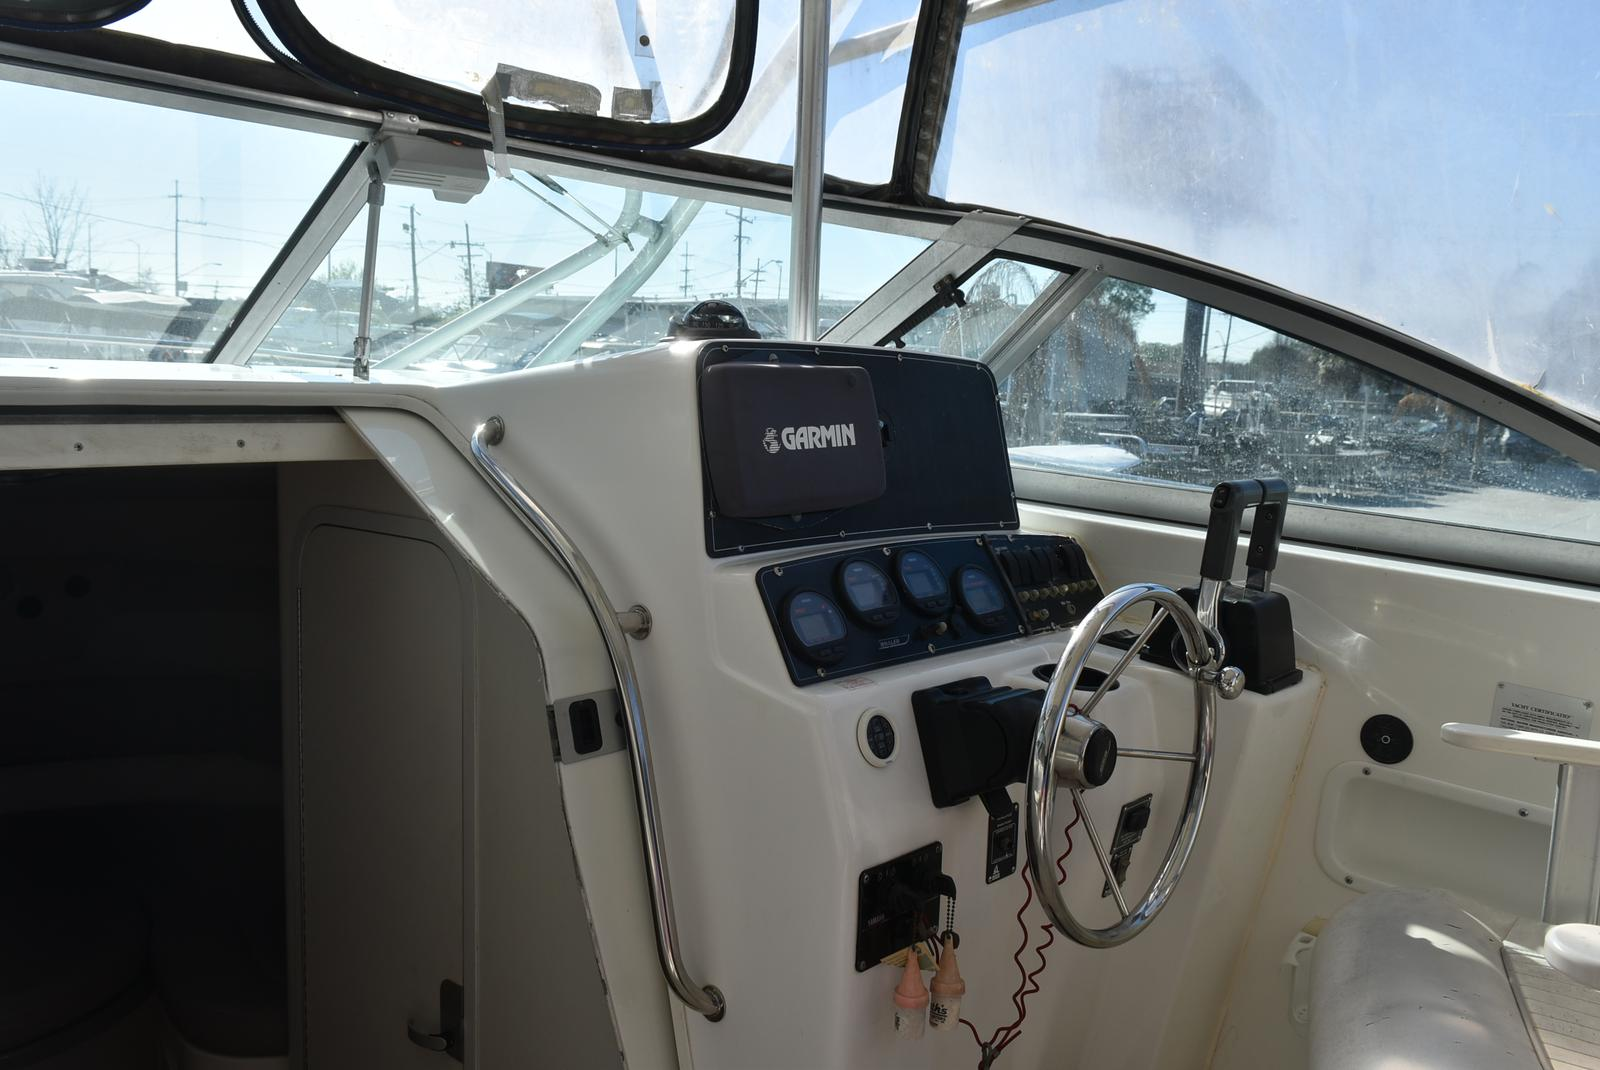 1999 Boston Whaler boat for sale, model of the boat is 285 Conquest & Image # 24 of 50